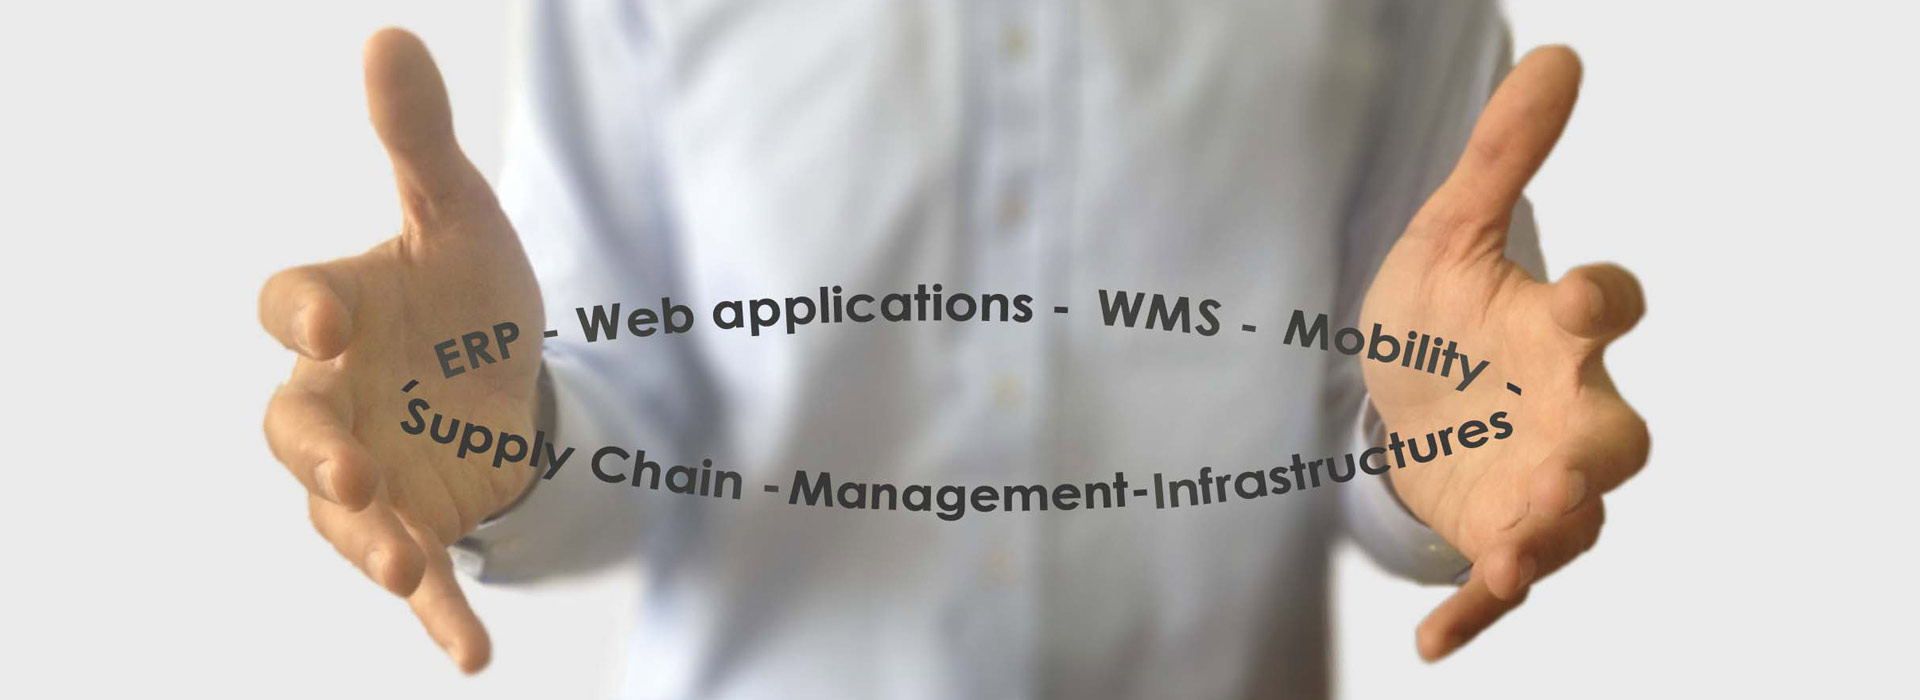 ERP, Web applications, WMS, Mobility, Supply Chain, Management, Infrastructures.